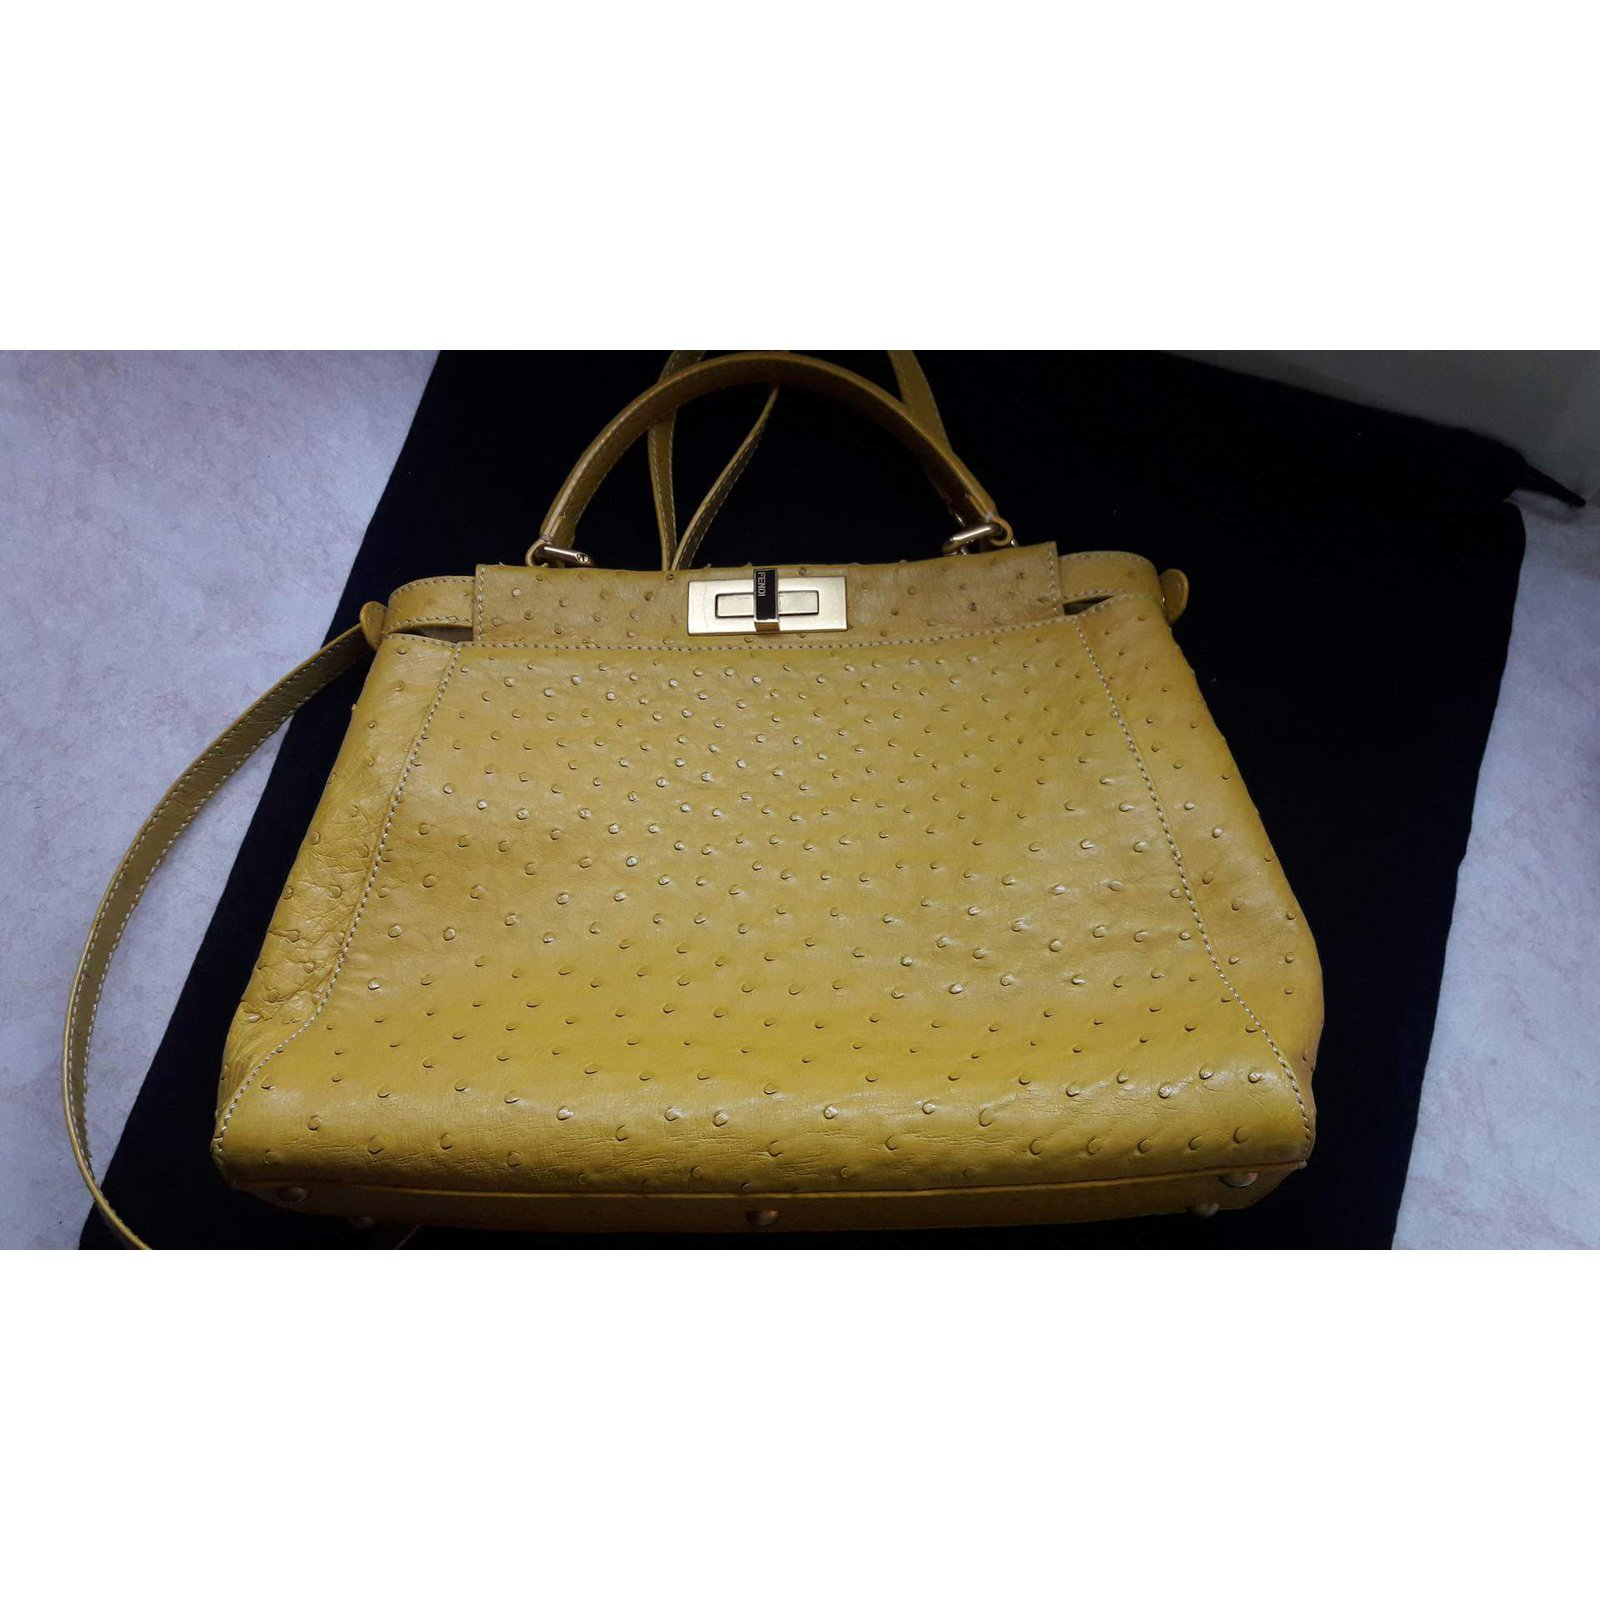 05f1e31241 Fendi Ostrich Peekaboo Handbags Exotic leather Yellow ref.62950 - Joli  Closet